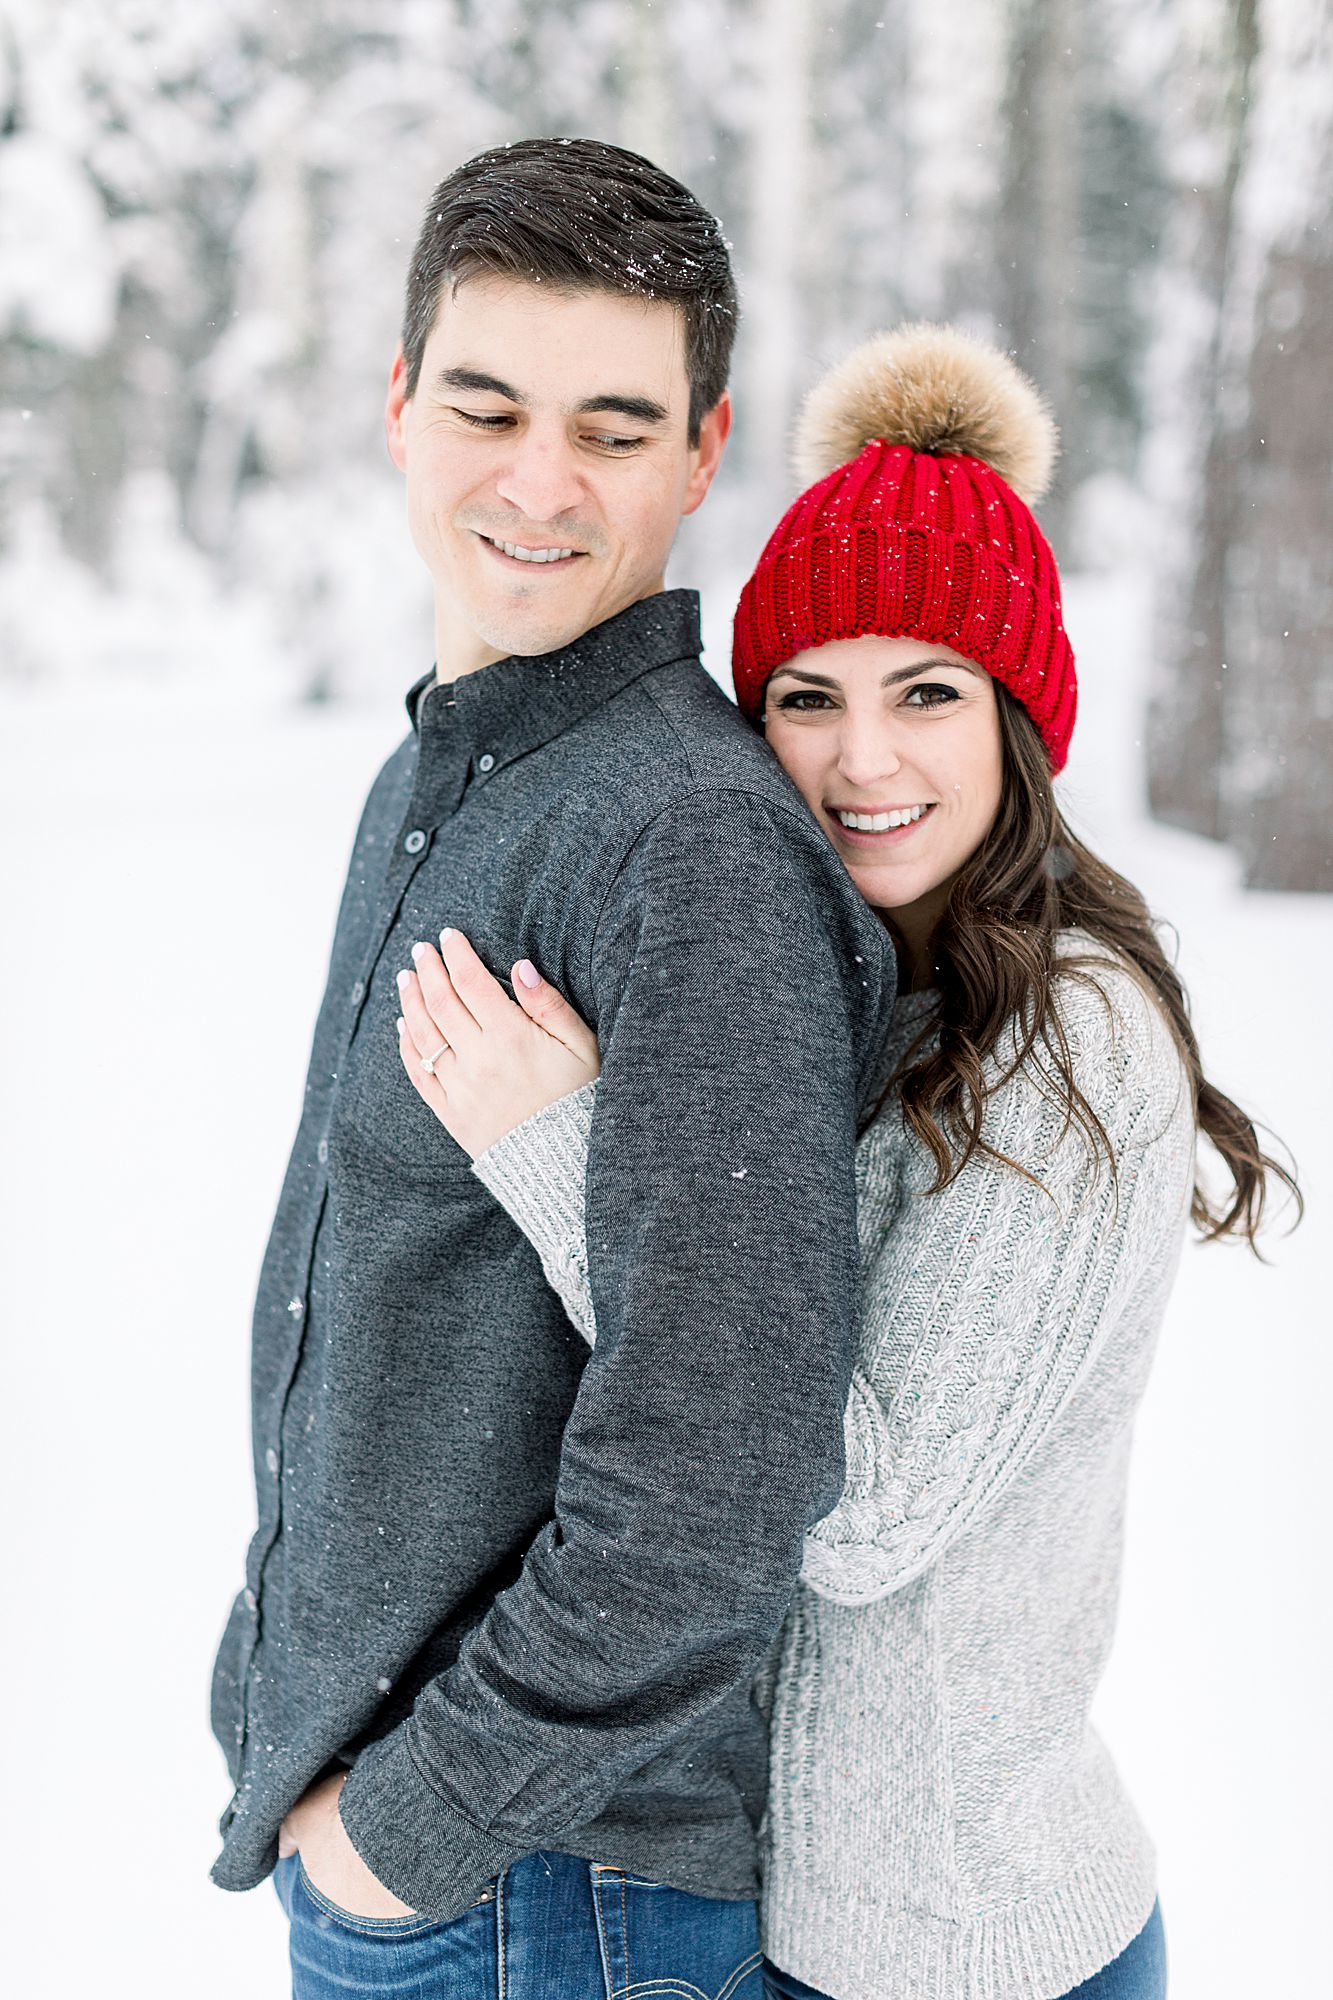 Snowy Tahoe Engagement Session - Alex and Kevin - Ashley Baumgartner - Tahoe Engagement Session - Tahoe Wedding Photographer - Tahoe Engagement Photos - Snow Engagement Photos_0010.jpg